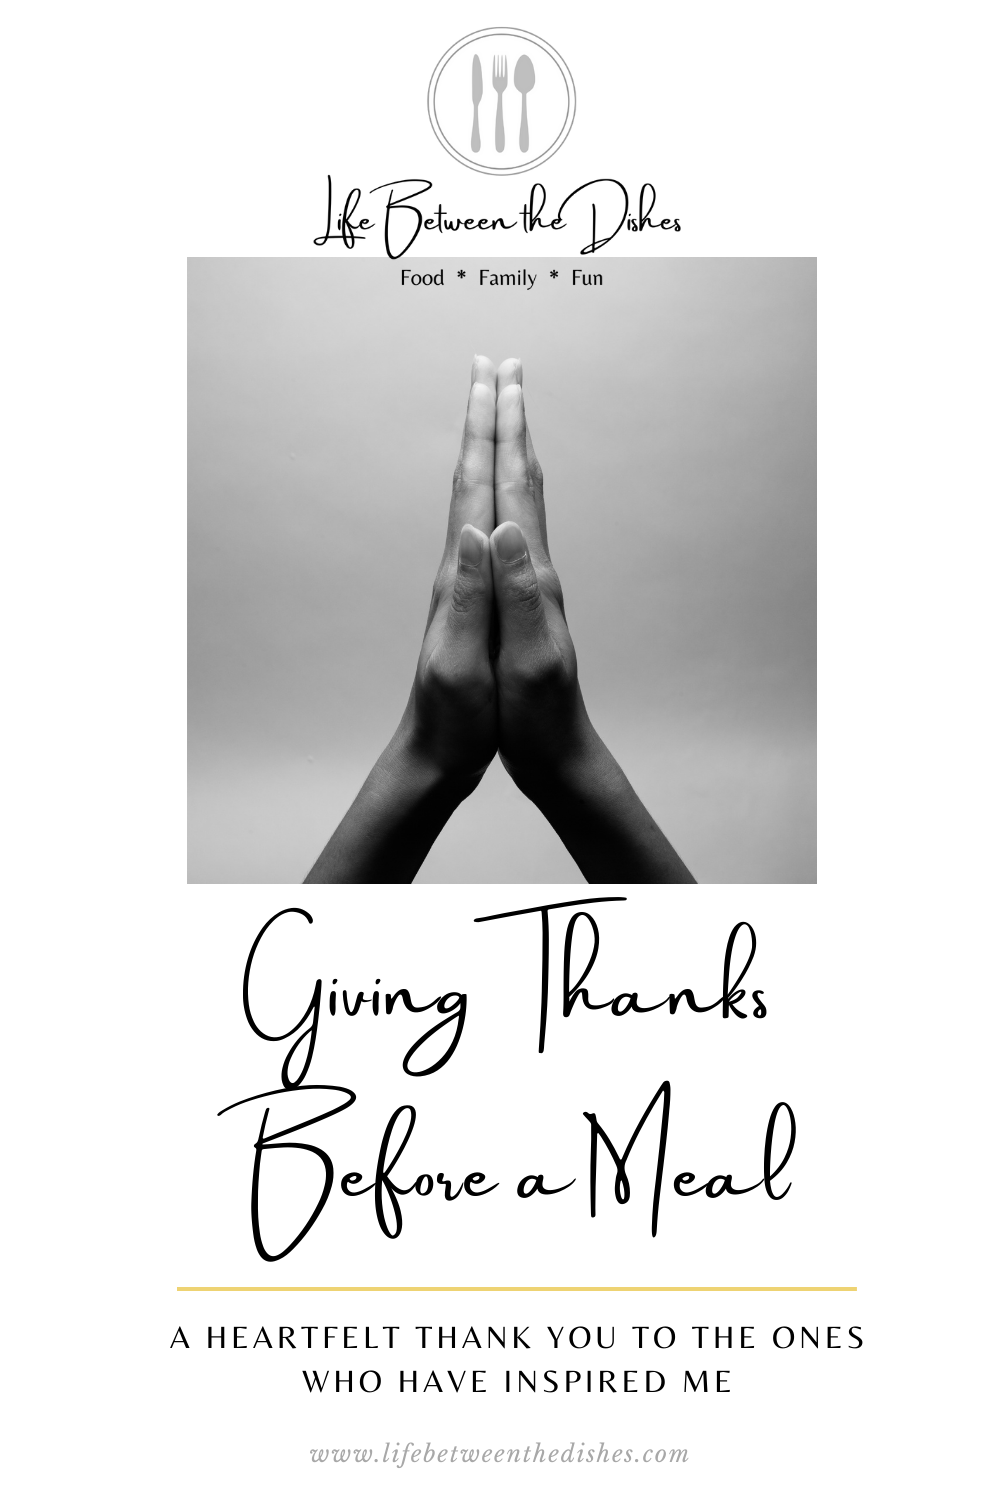 Giving Thanks Before a Meal